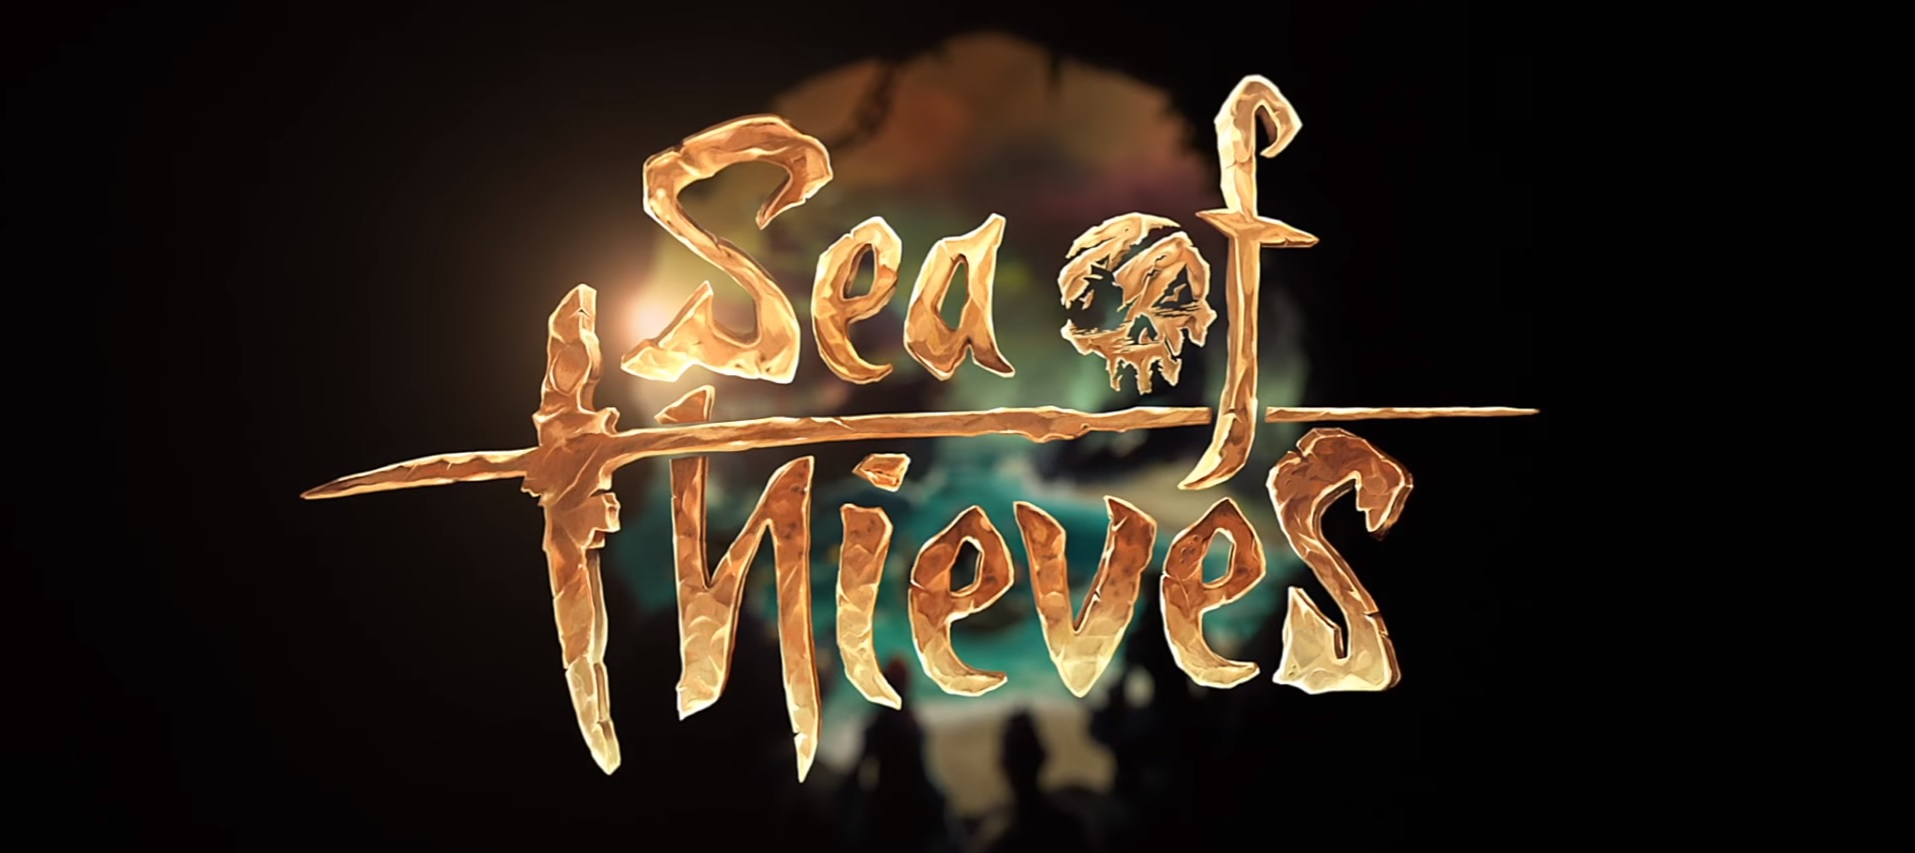 E3 Sea Of Thieves Has Multiplayer Pirate Ship Battles